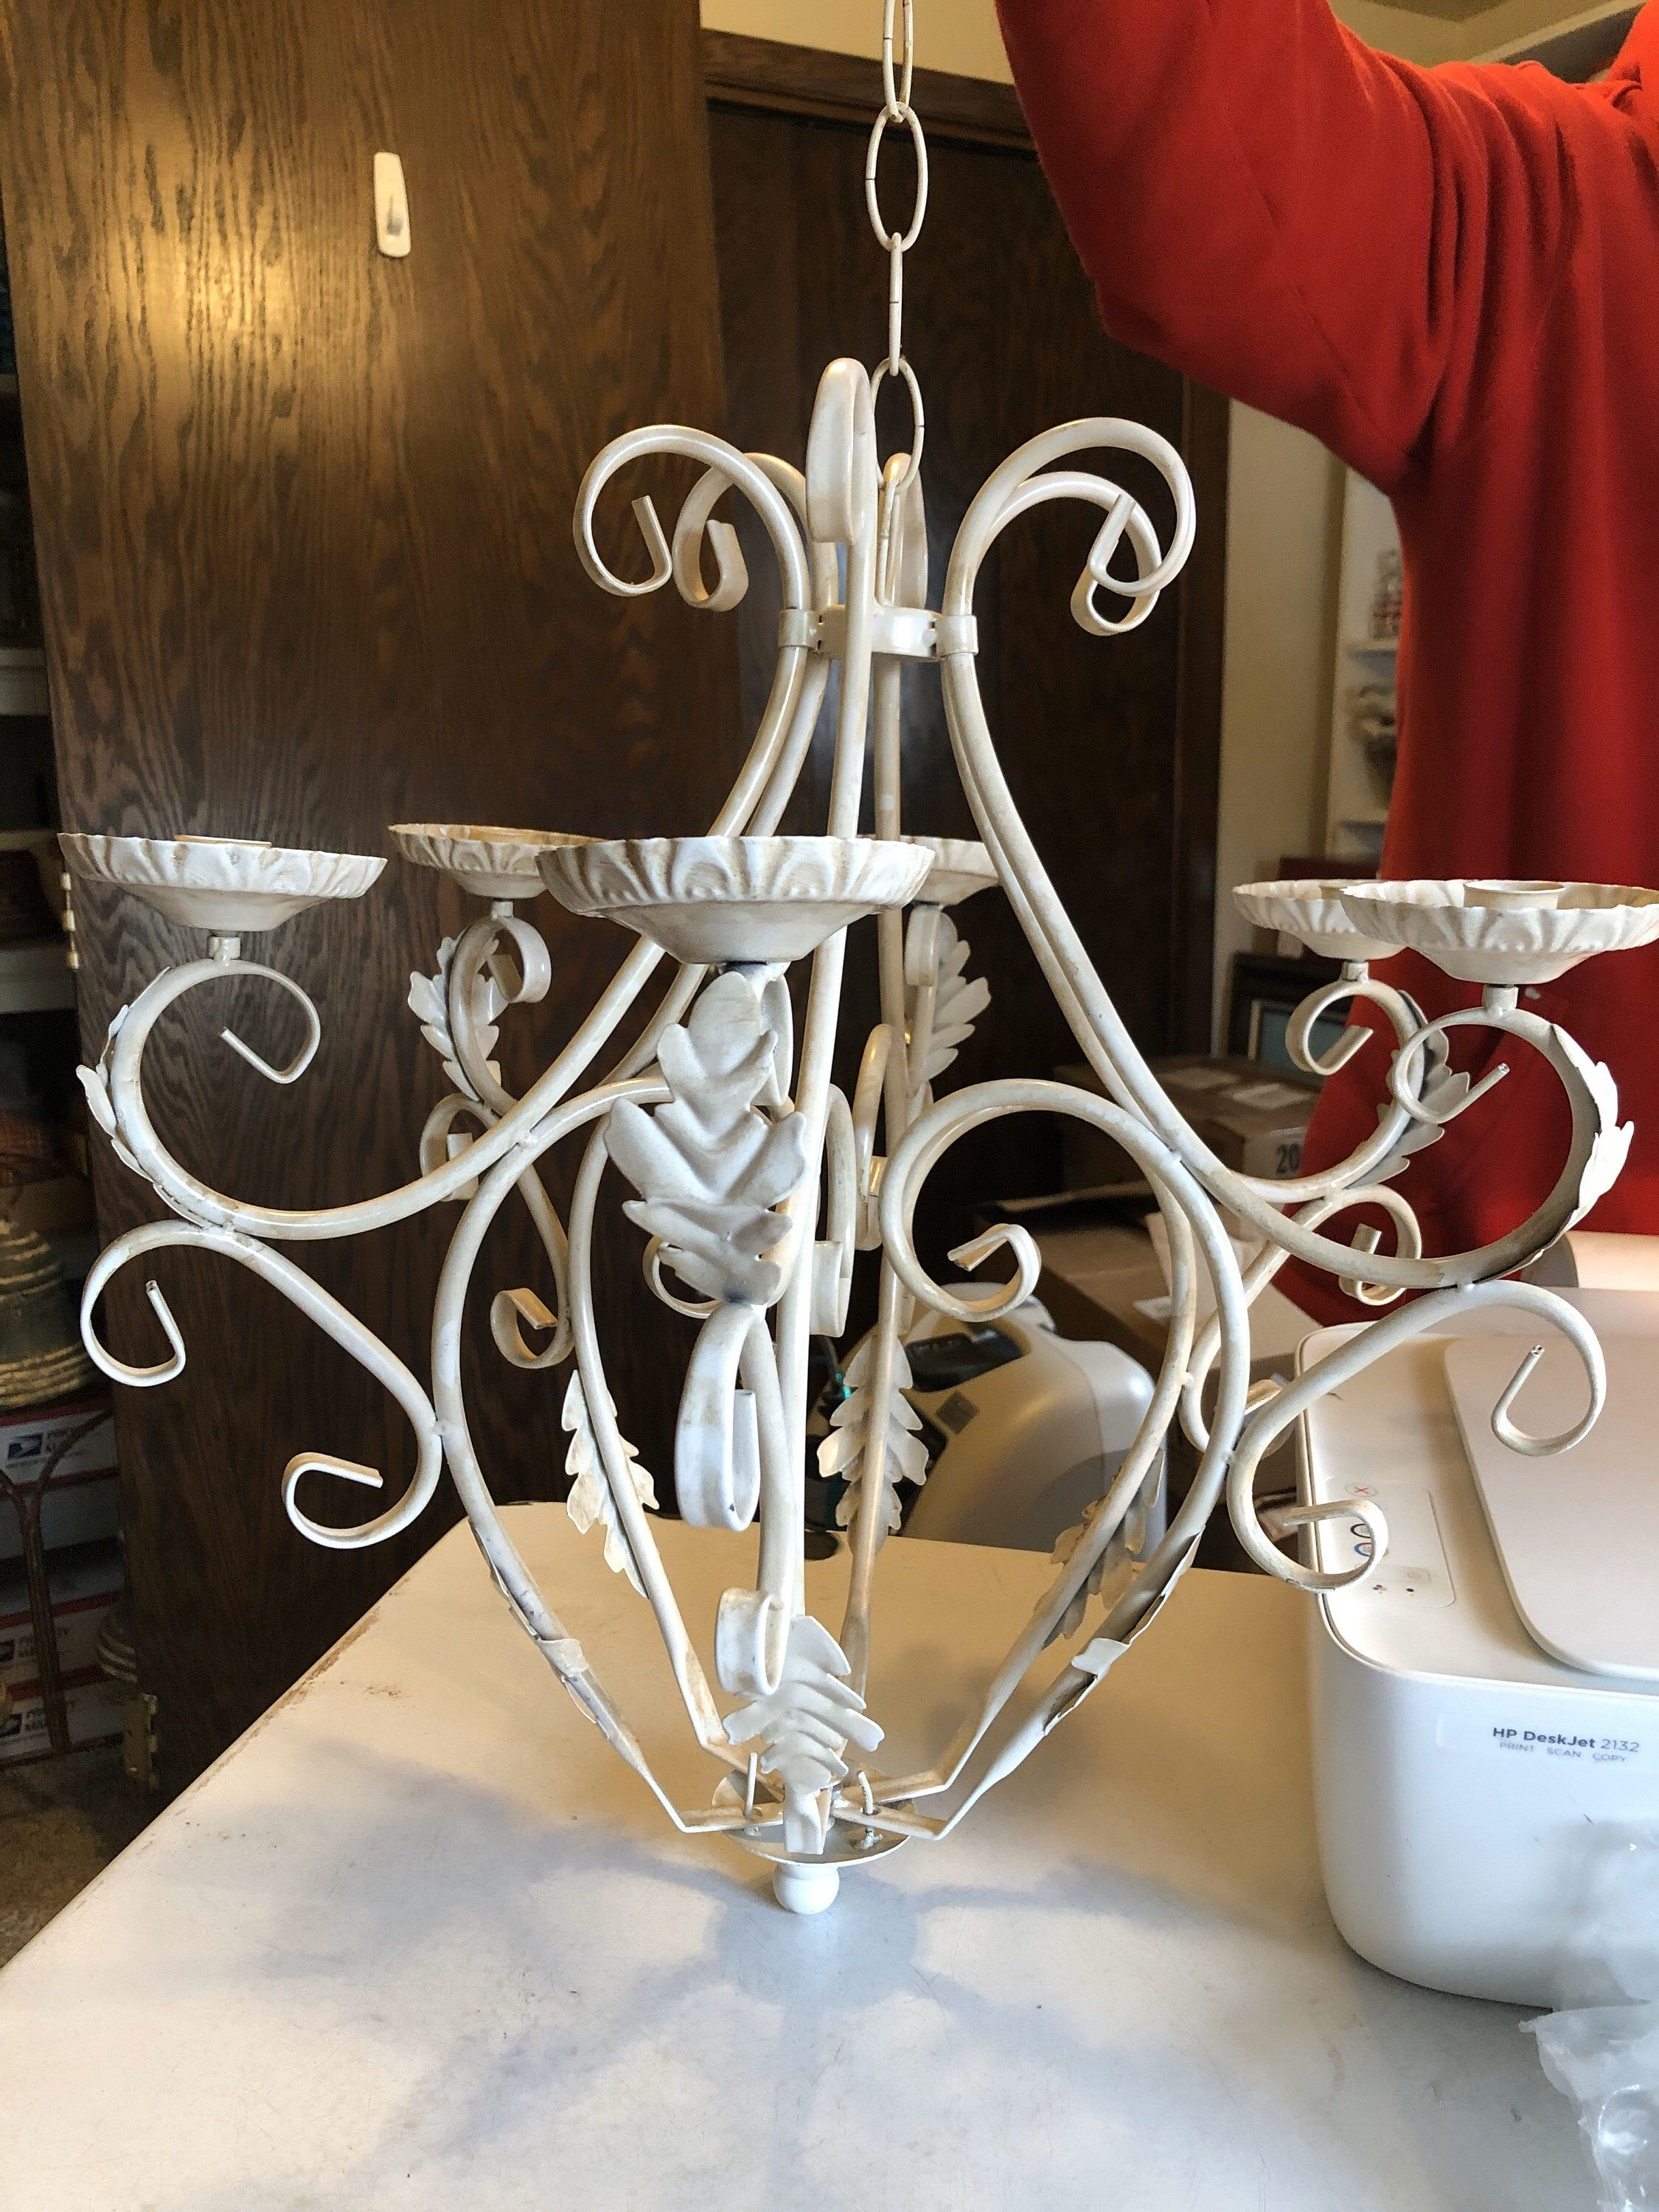 Shabby Chic Candle Chandelier Non Electric Metal Hanging ... on Decorative Sconces Don't Need Electric Toothbrush id=32382